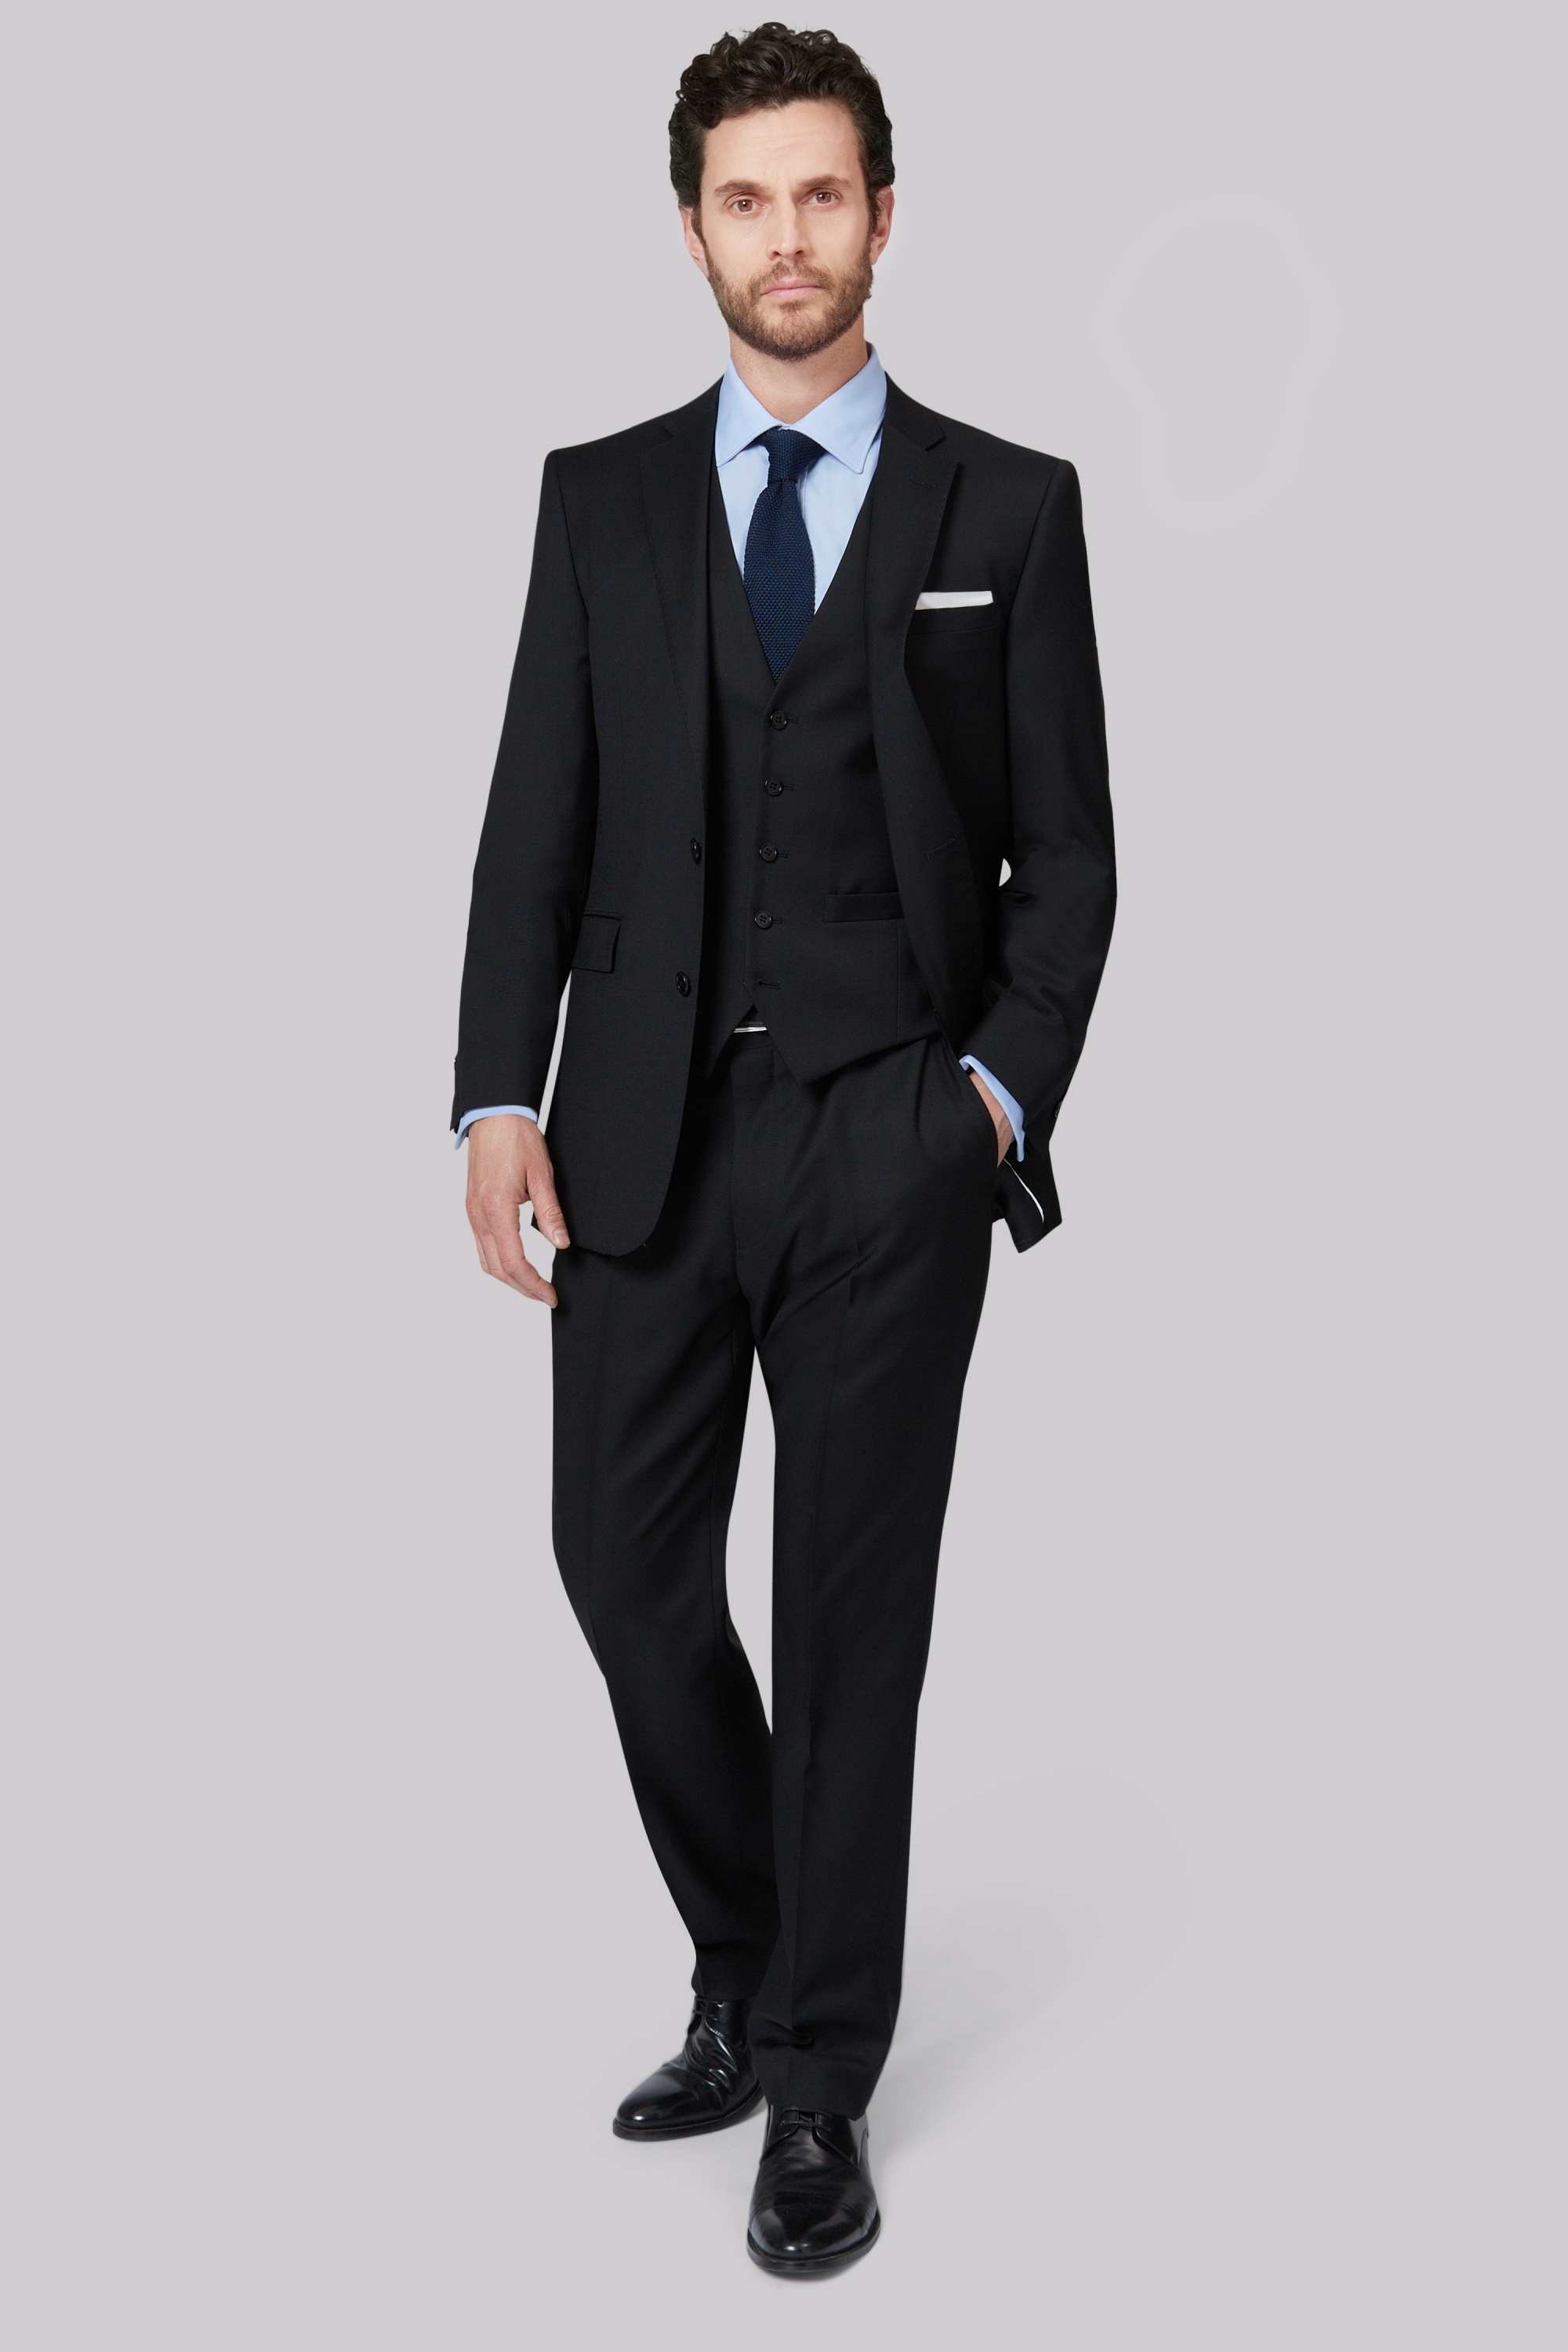 Lanificio F.lli Cerruti Dal 1881 Cloth Tailored Fit Black ...